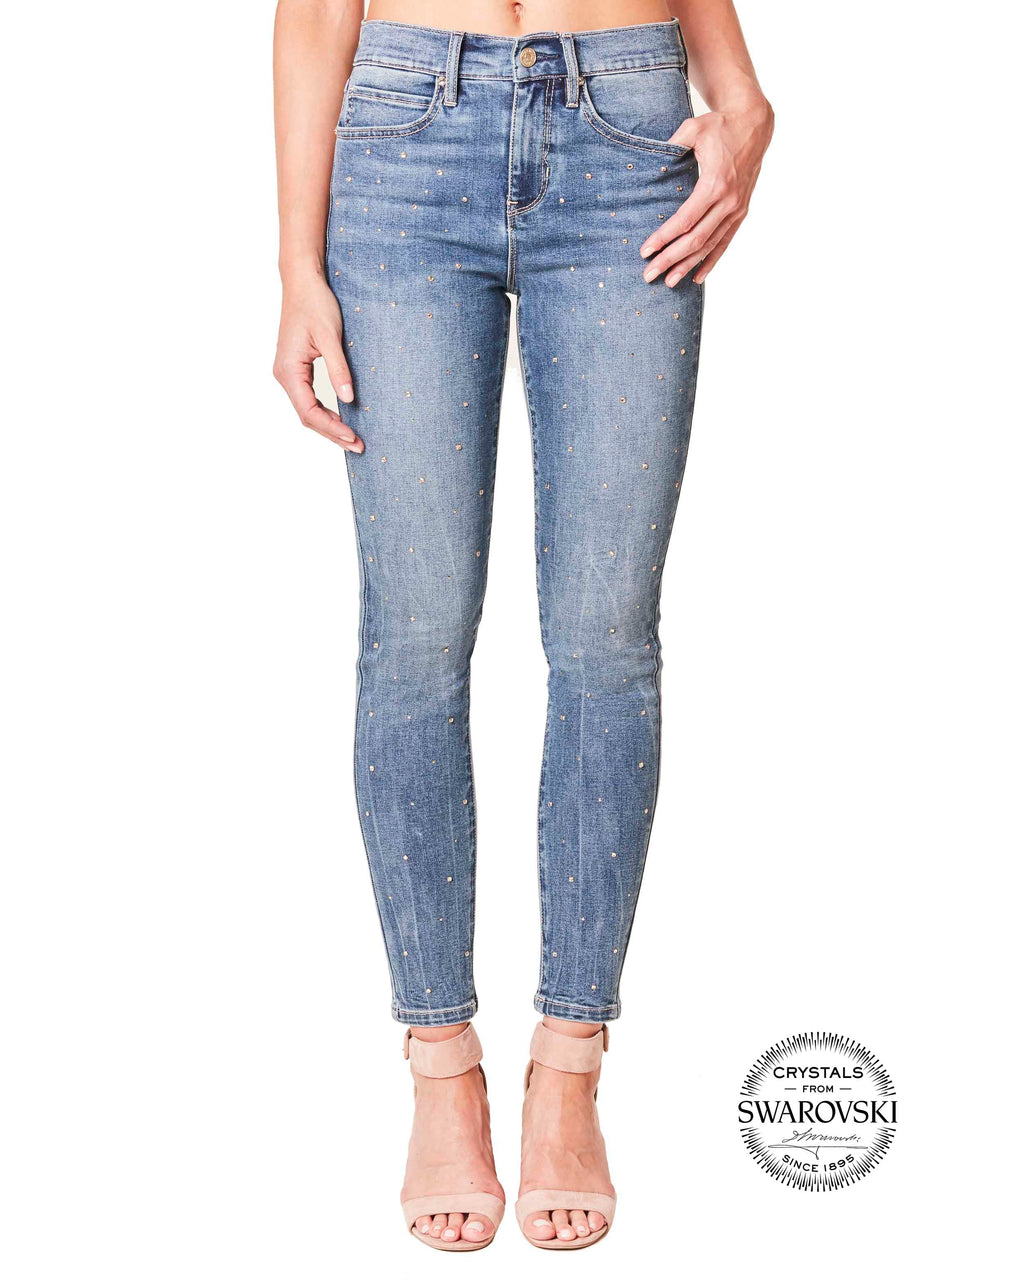 NJ0507S - Swarovski Soho Jeans - bottoms - denim - Stay classy. We teamed up with Swarovsk Registered Trademark symbol to give you these lightweight, light blue jeans. Eye-catching crystals dot across the front legs, elevating the classic style. The denim lightly fades. Style with a dressier top, or a simple t-shirt to let the crystals shine. Inseam: 26 3/4""